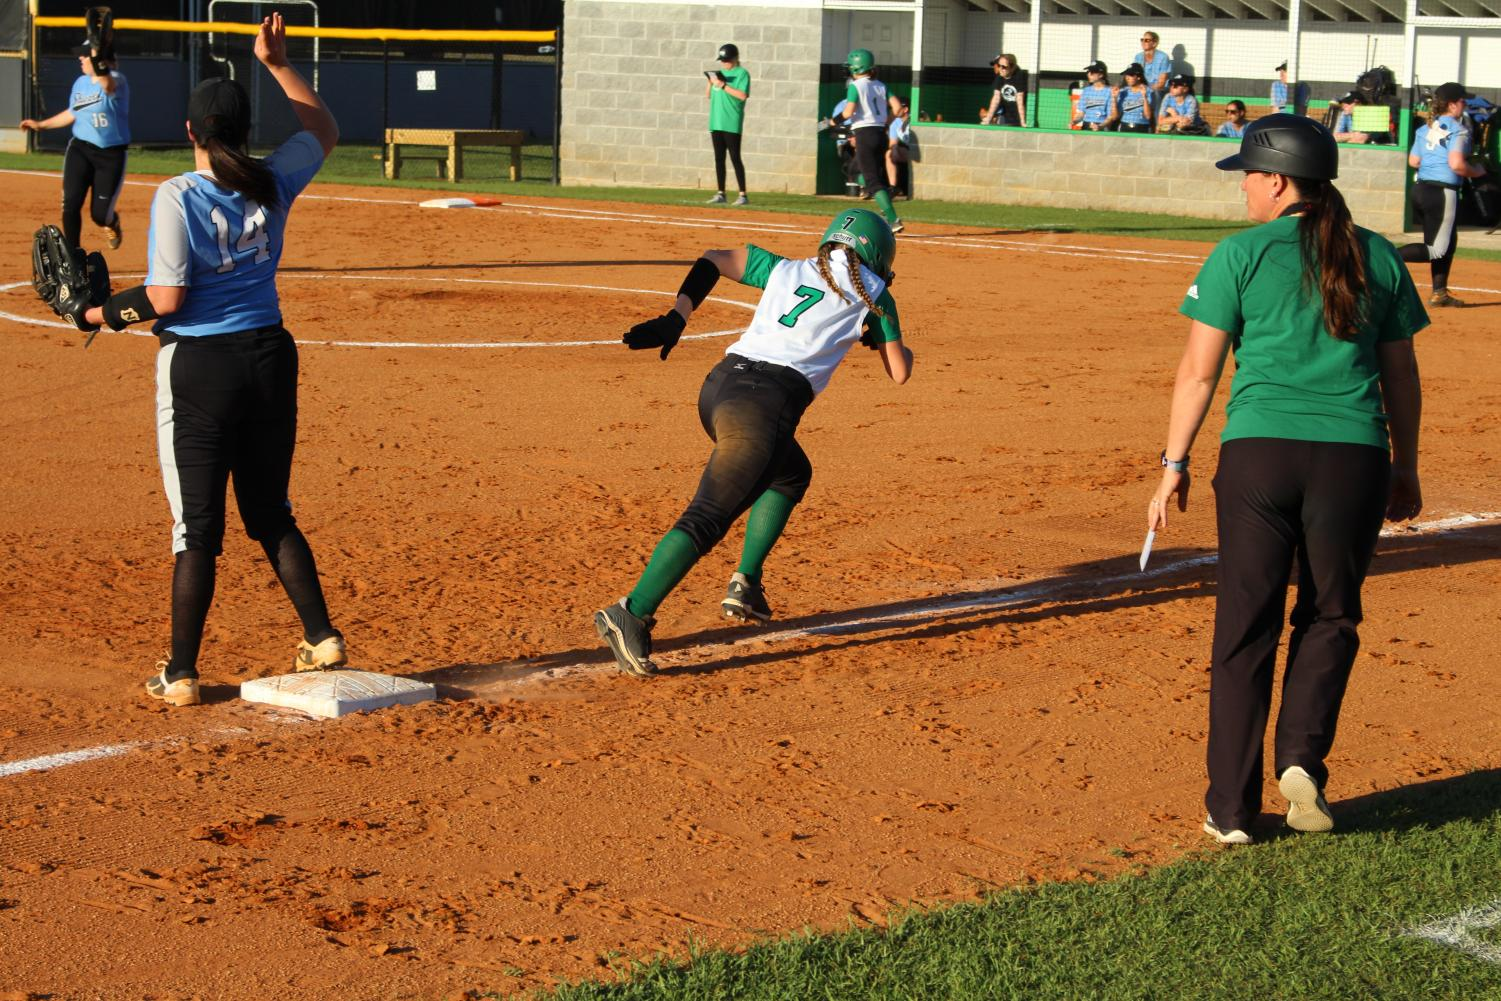 Number 7, Katelyn Fulford, running to home base.